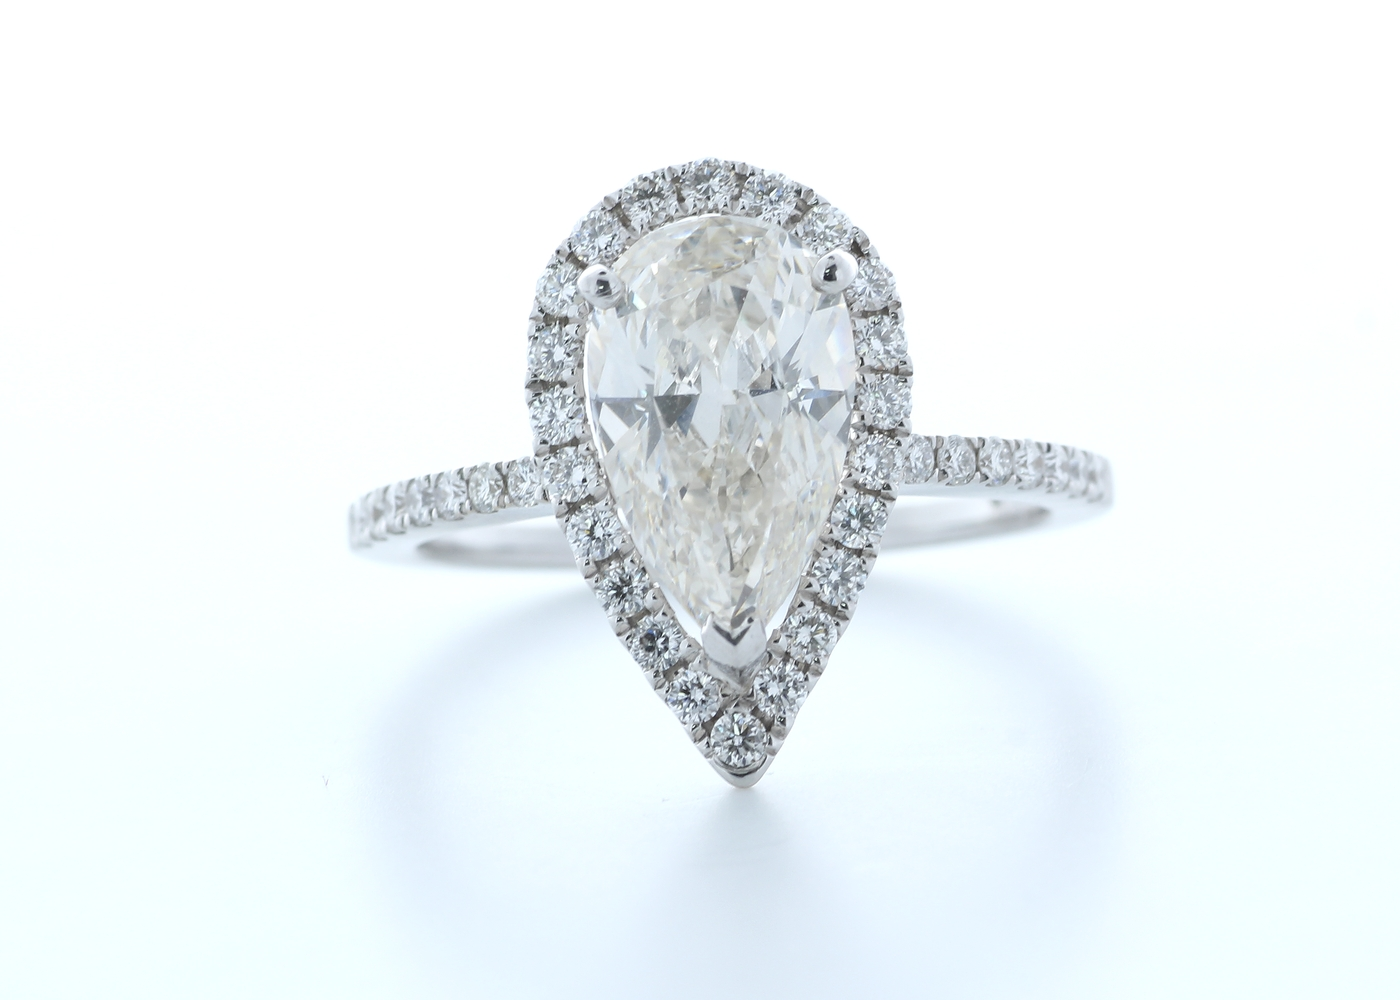 18ct White Gold Single Stone With Halo Setting Ring 2.54 (2.04) Carats